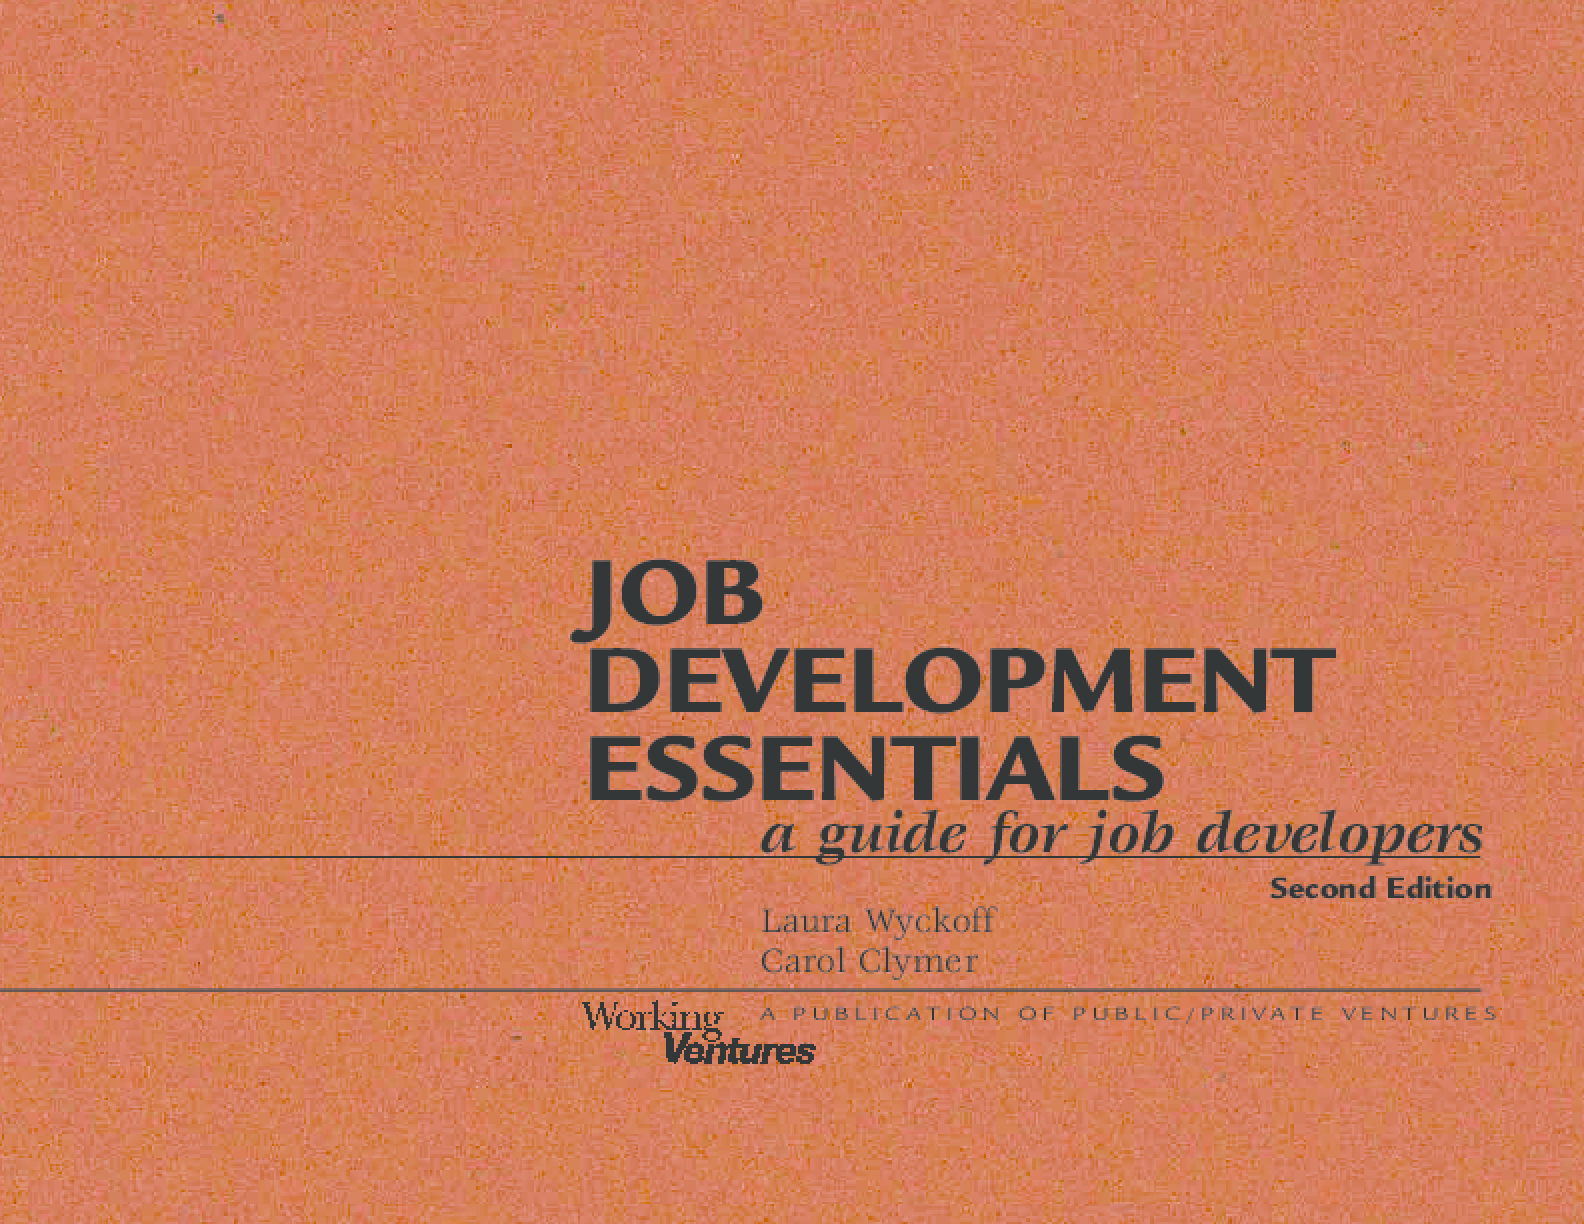 Job Development Essentials: A Guide for Job Developers, Second Edition